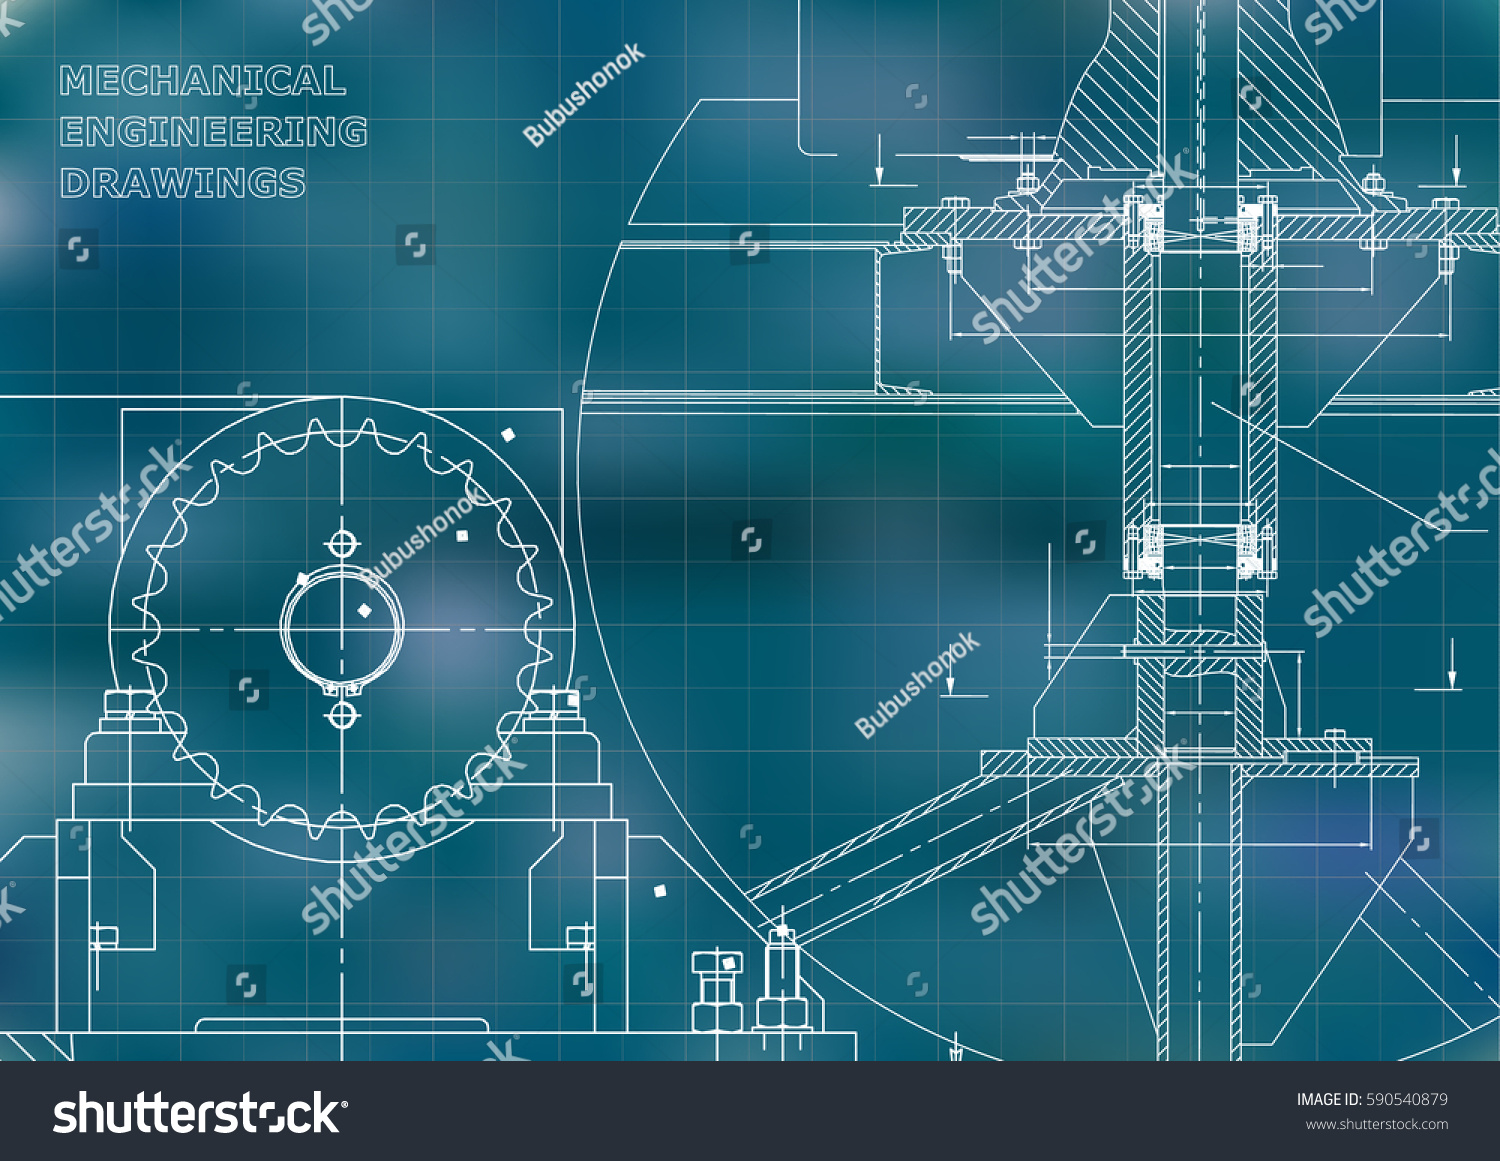 Blueprints mechanical construction engineering for Engineering blueprints